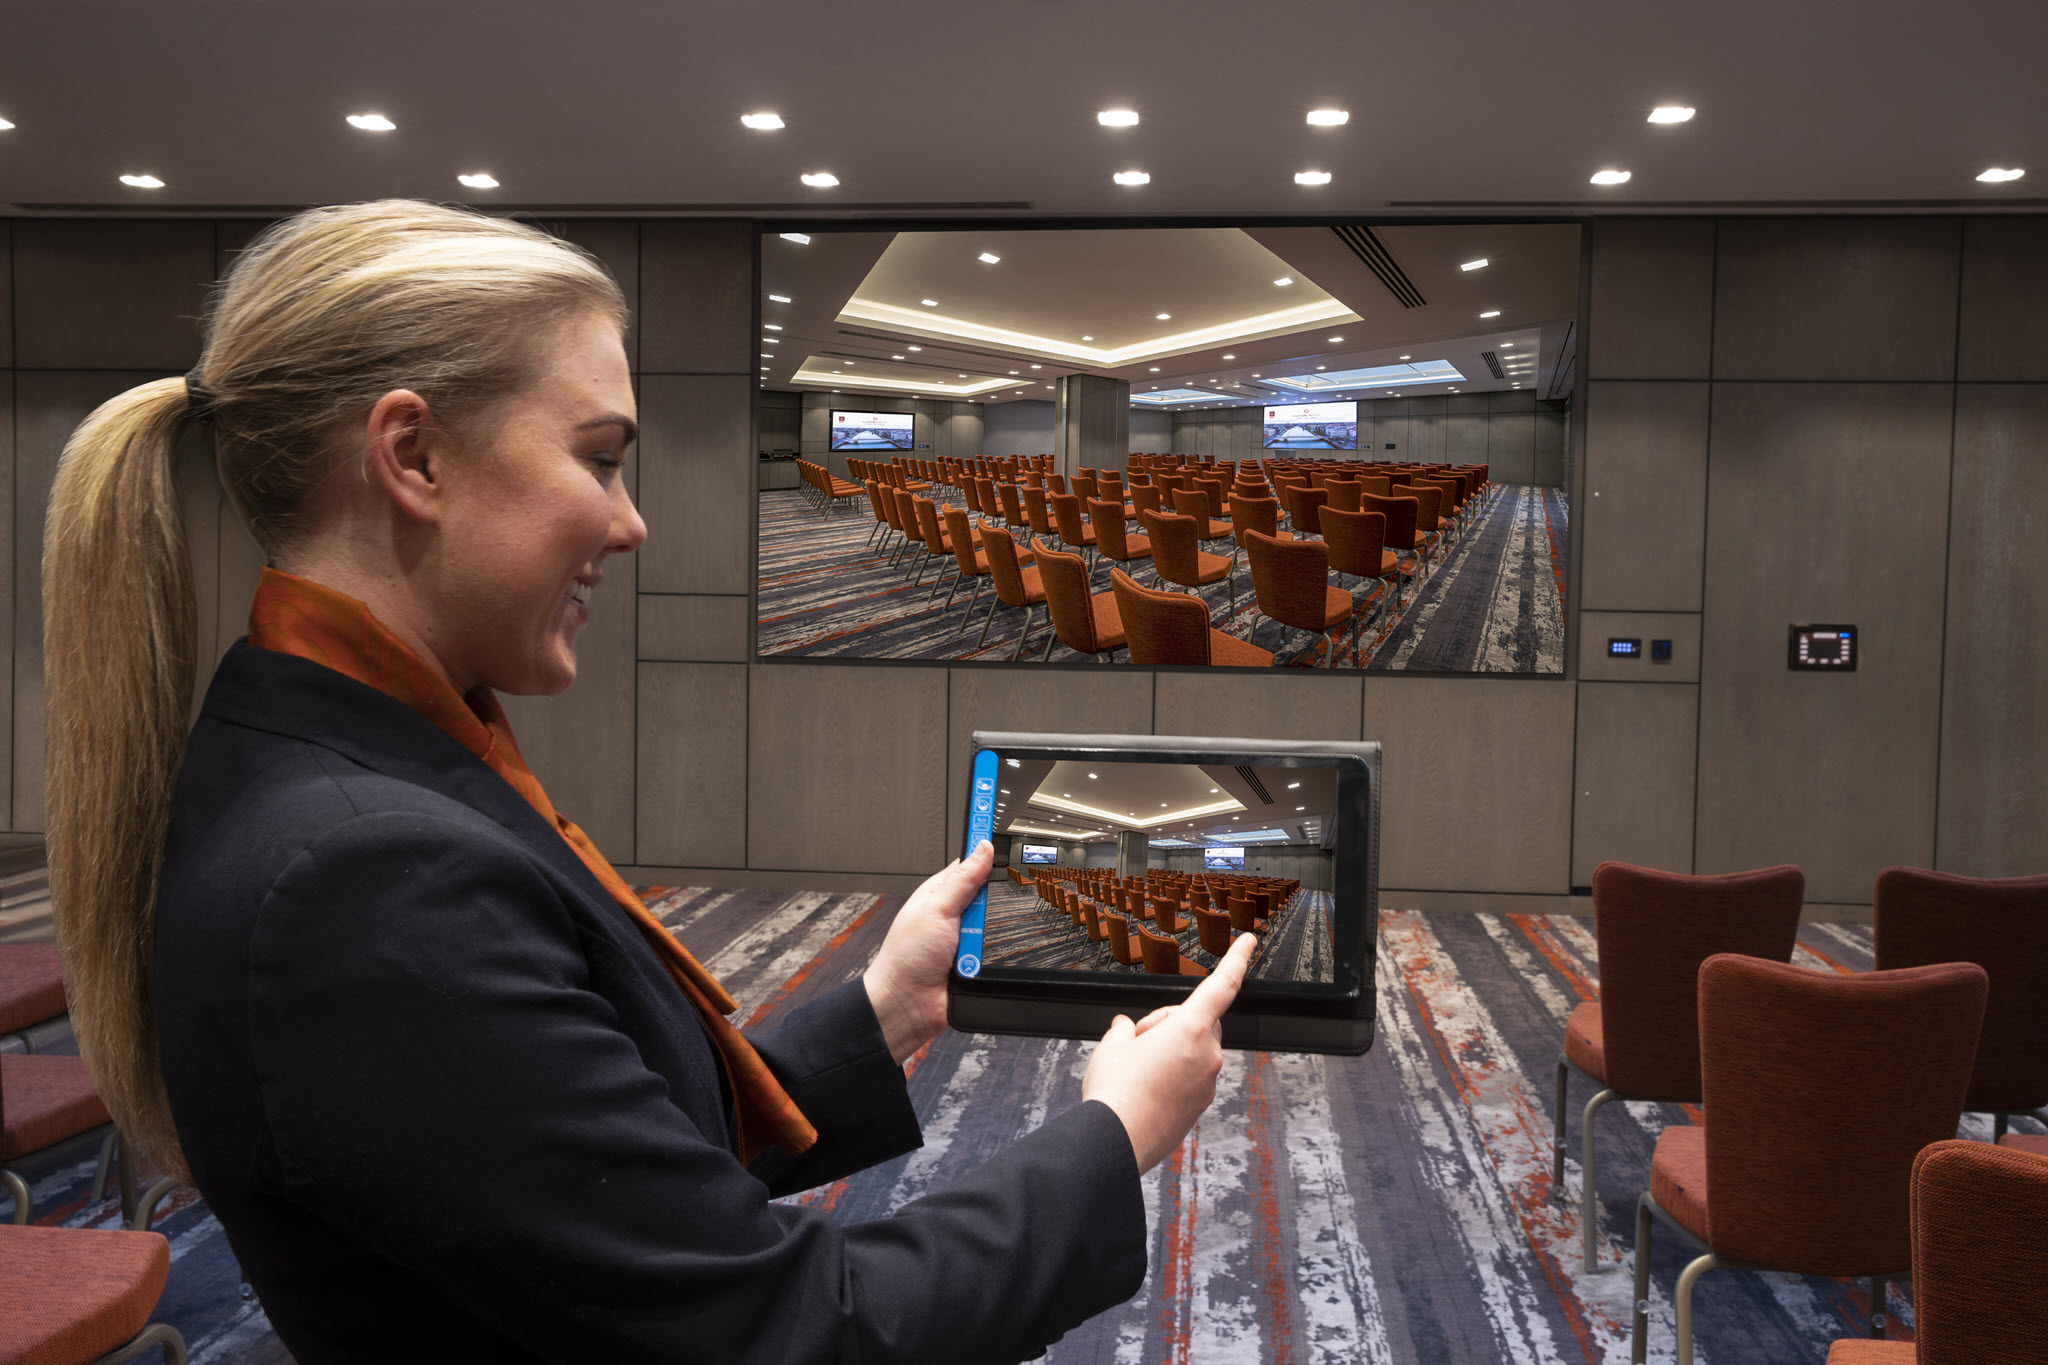 Clevertouch Technology Screen Mirror – Clayton Cardiff Lane Conference Dublin